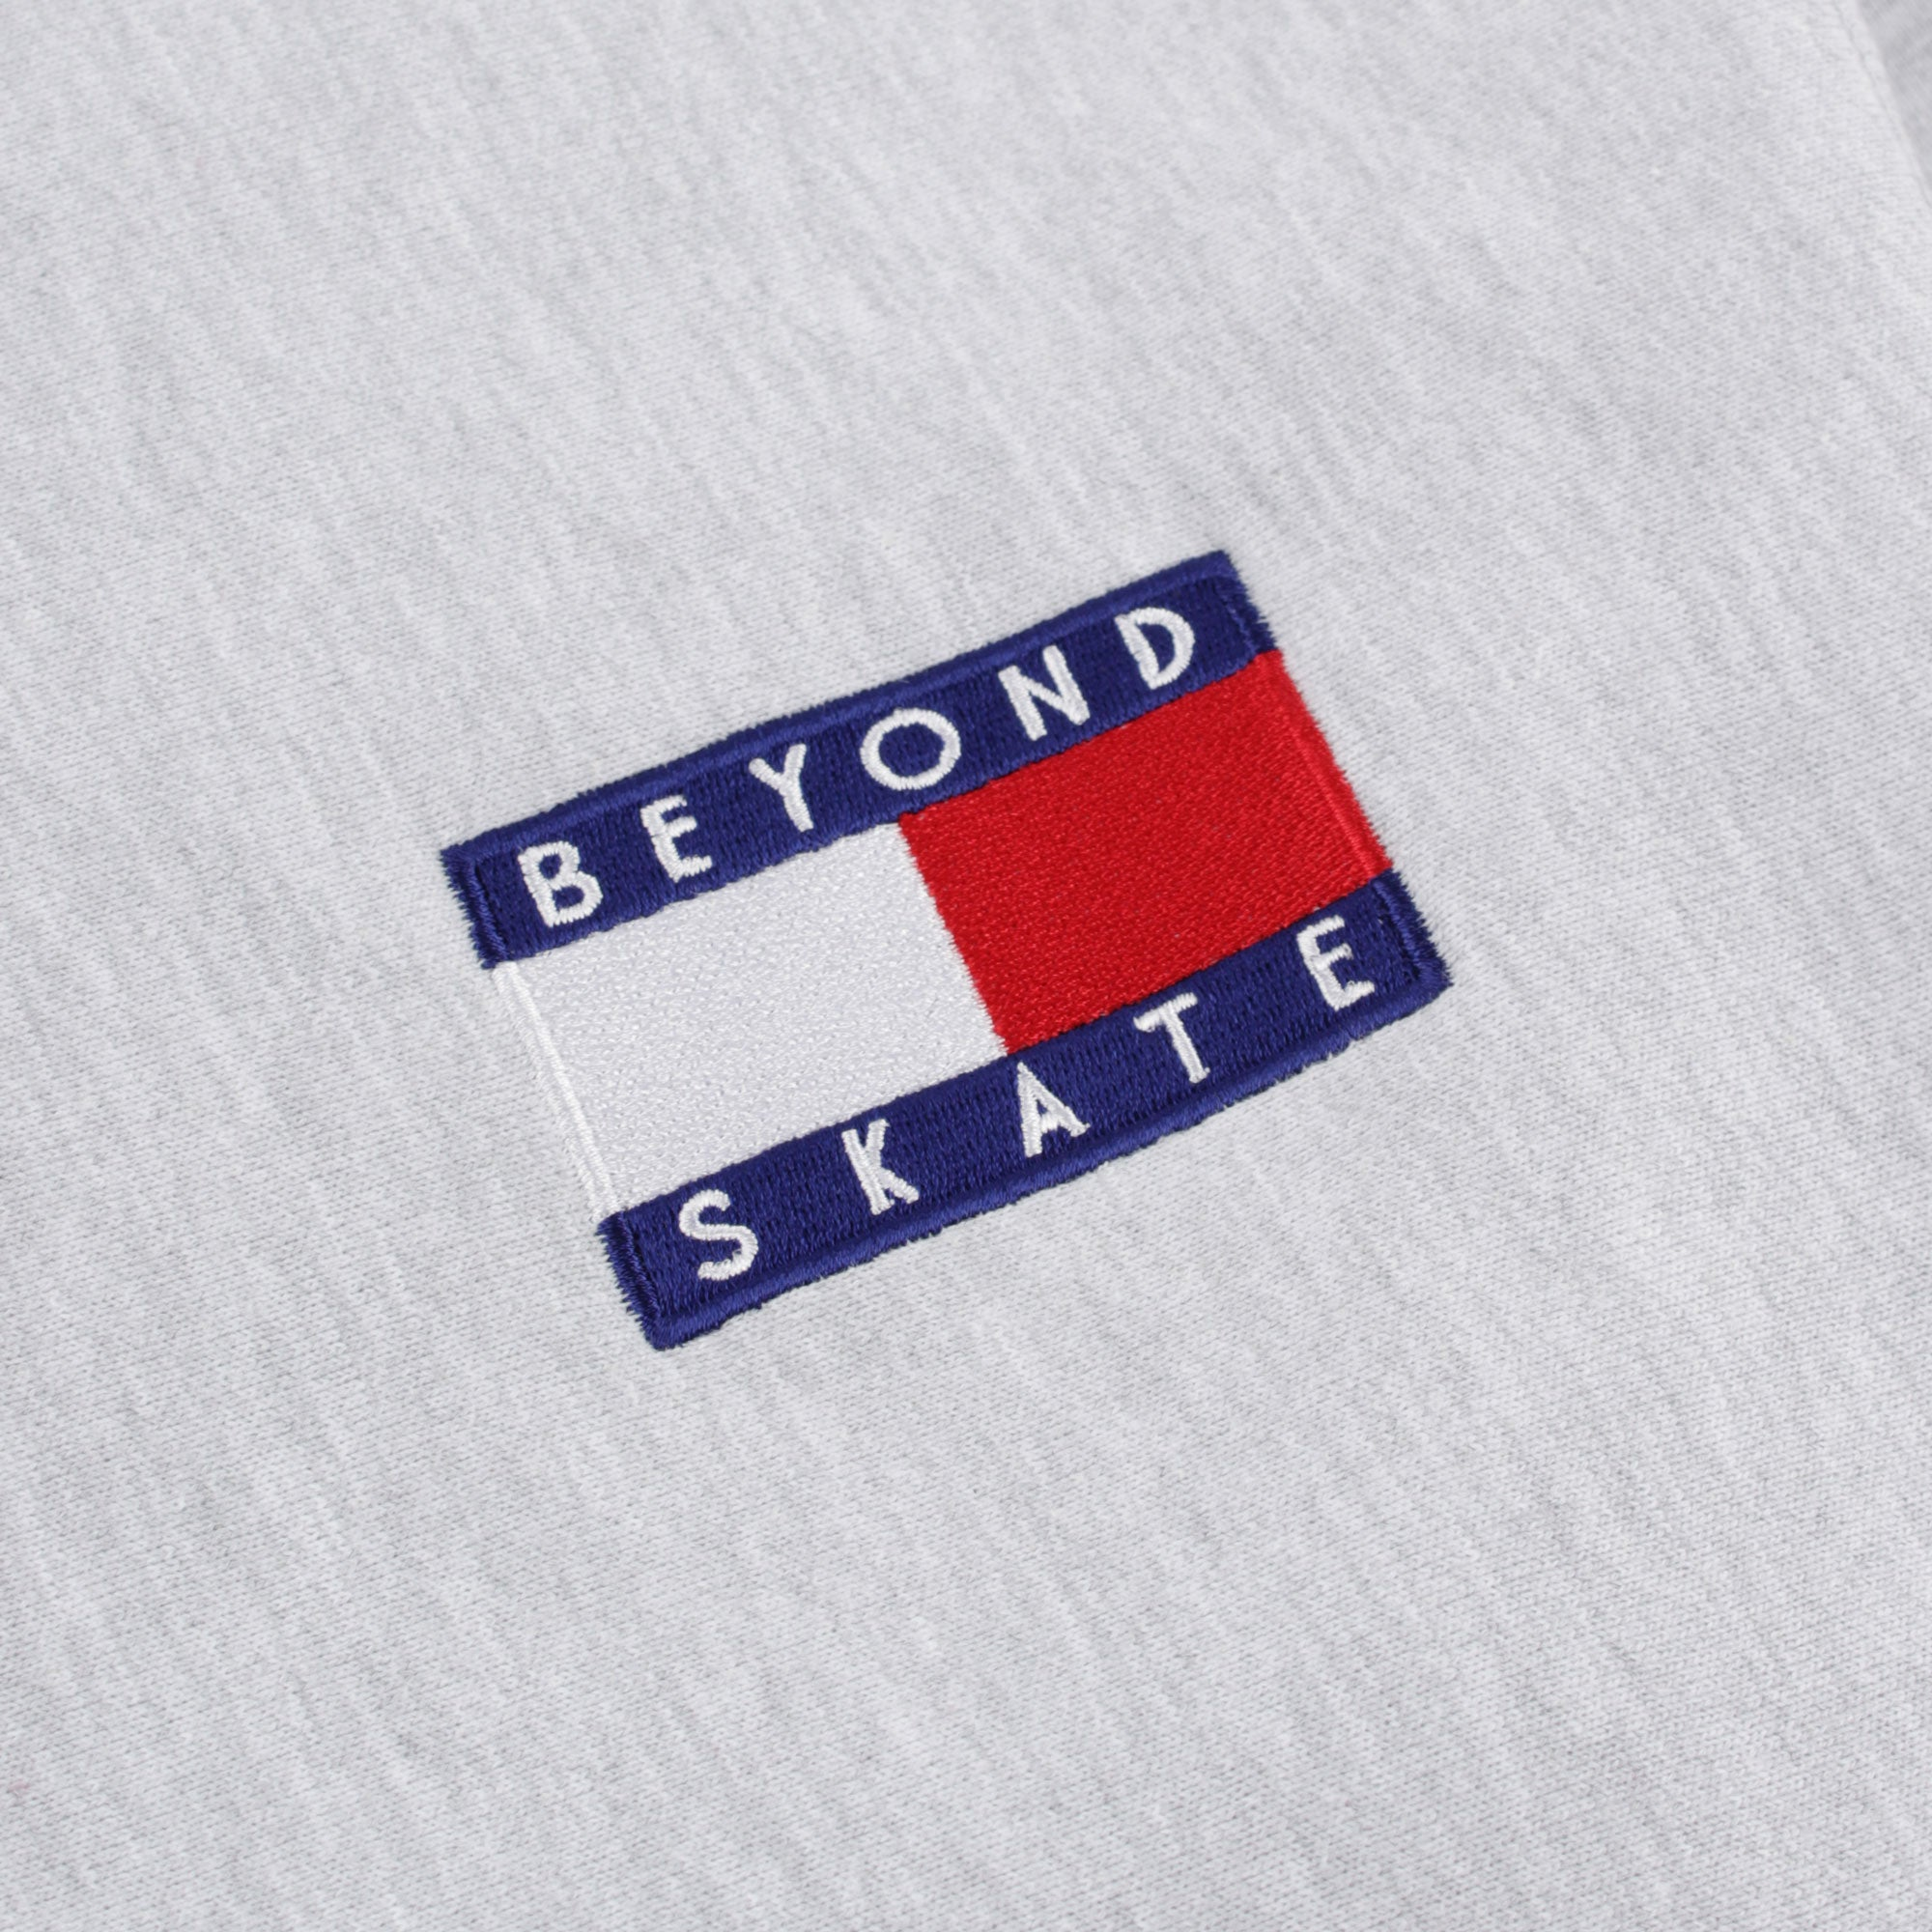 Beyond Tommy Crewneck Product Photo #3